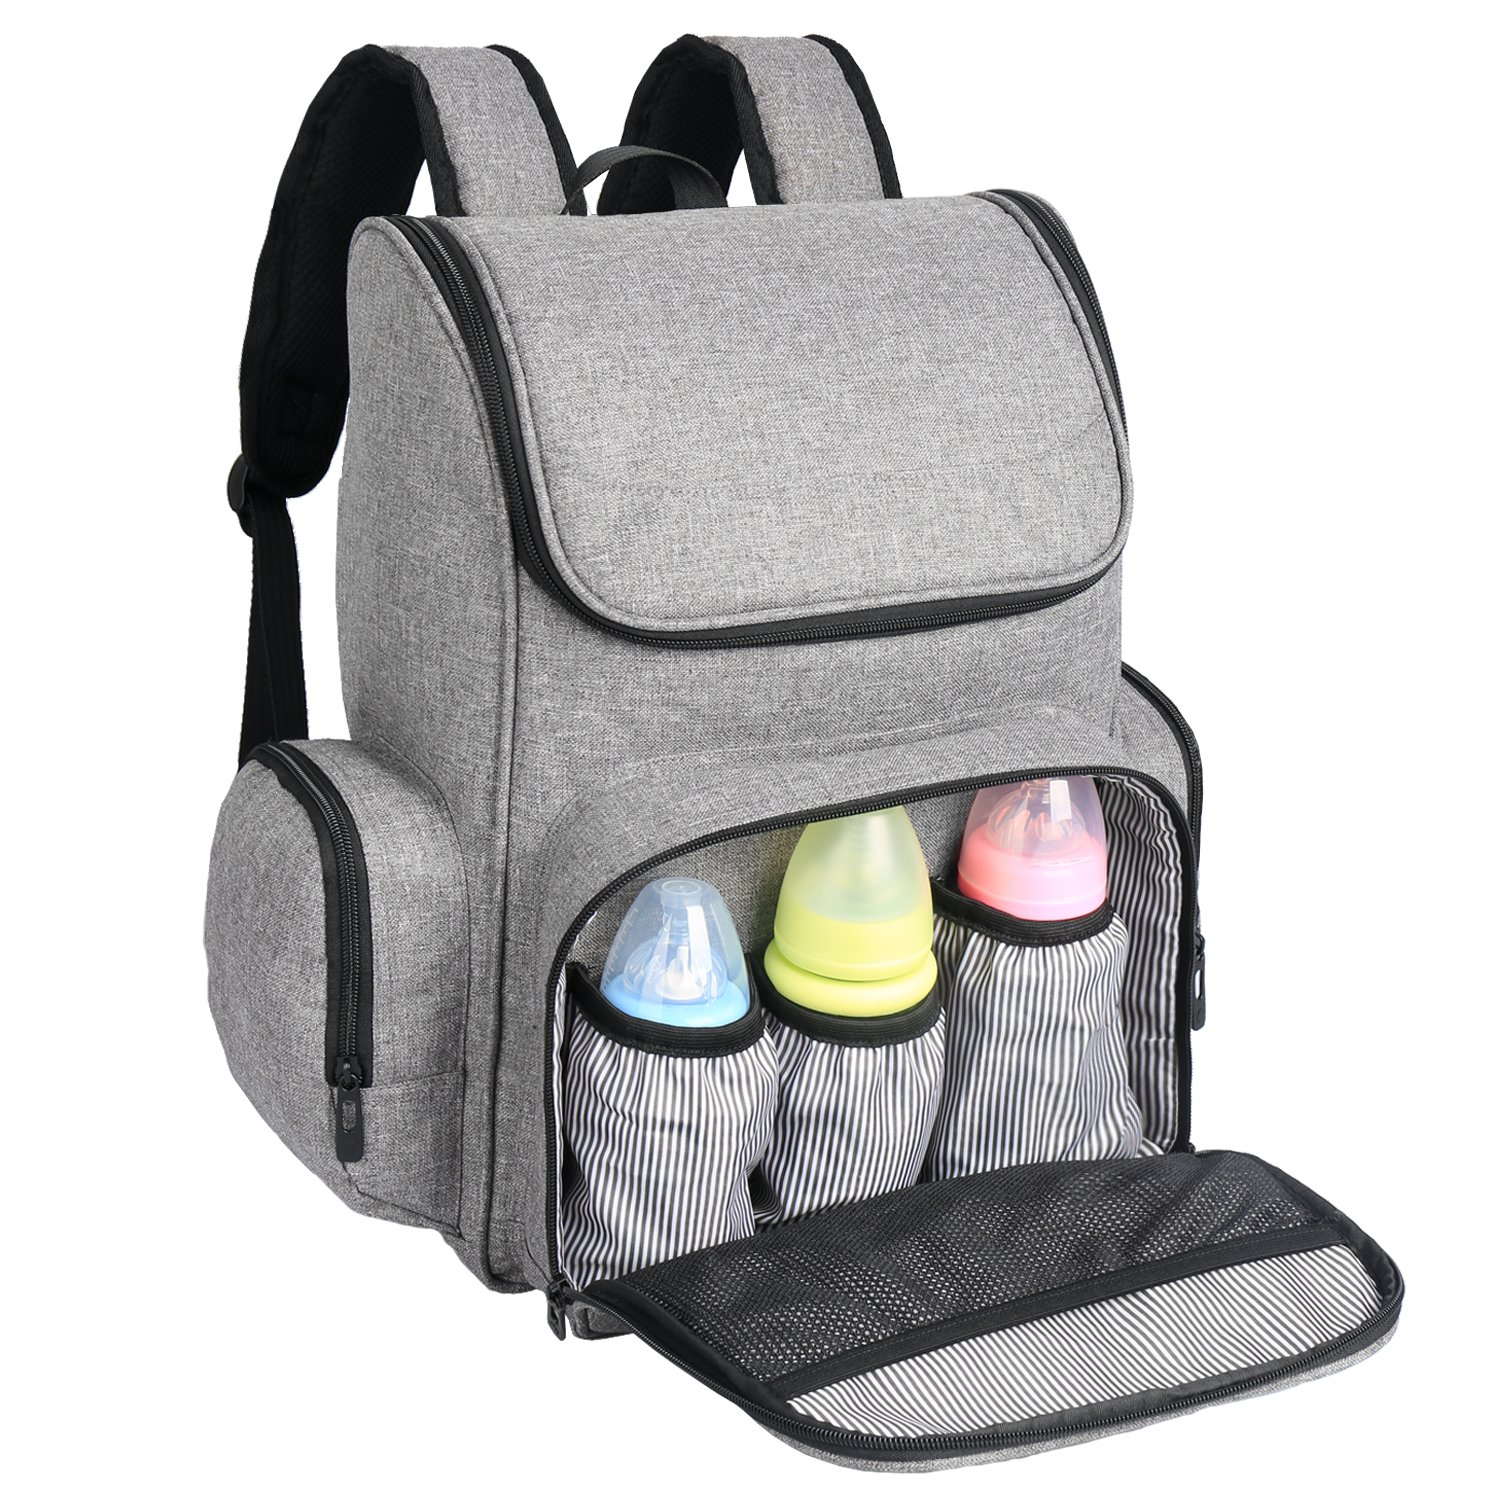 Ferlin Stylish Baby Diaper Bag Backpack Wide Open Design with Stroller Straps and Two Sealed Side Pockets